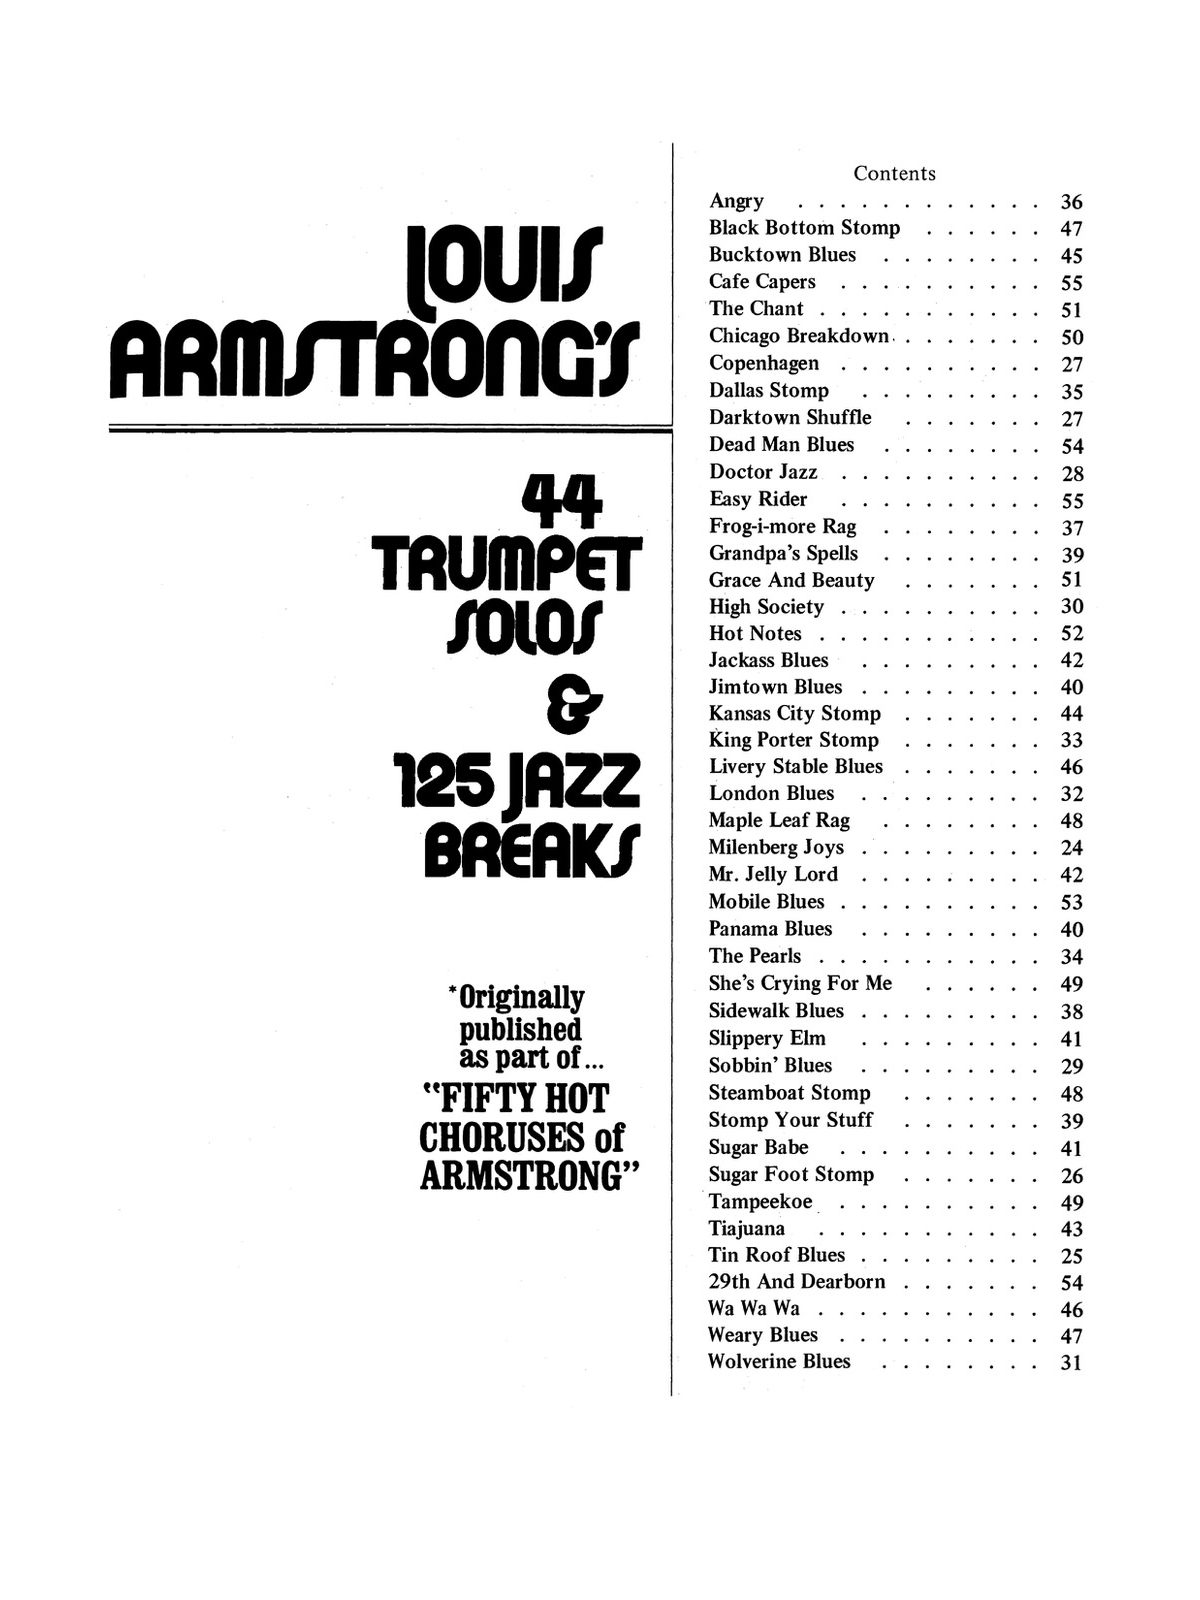 44 Trumpet Solos & 125 Jazz Breaks of Louis Armstrong by